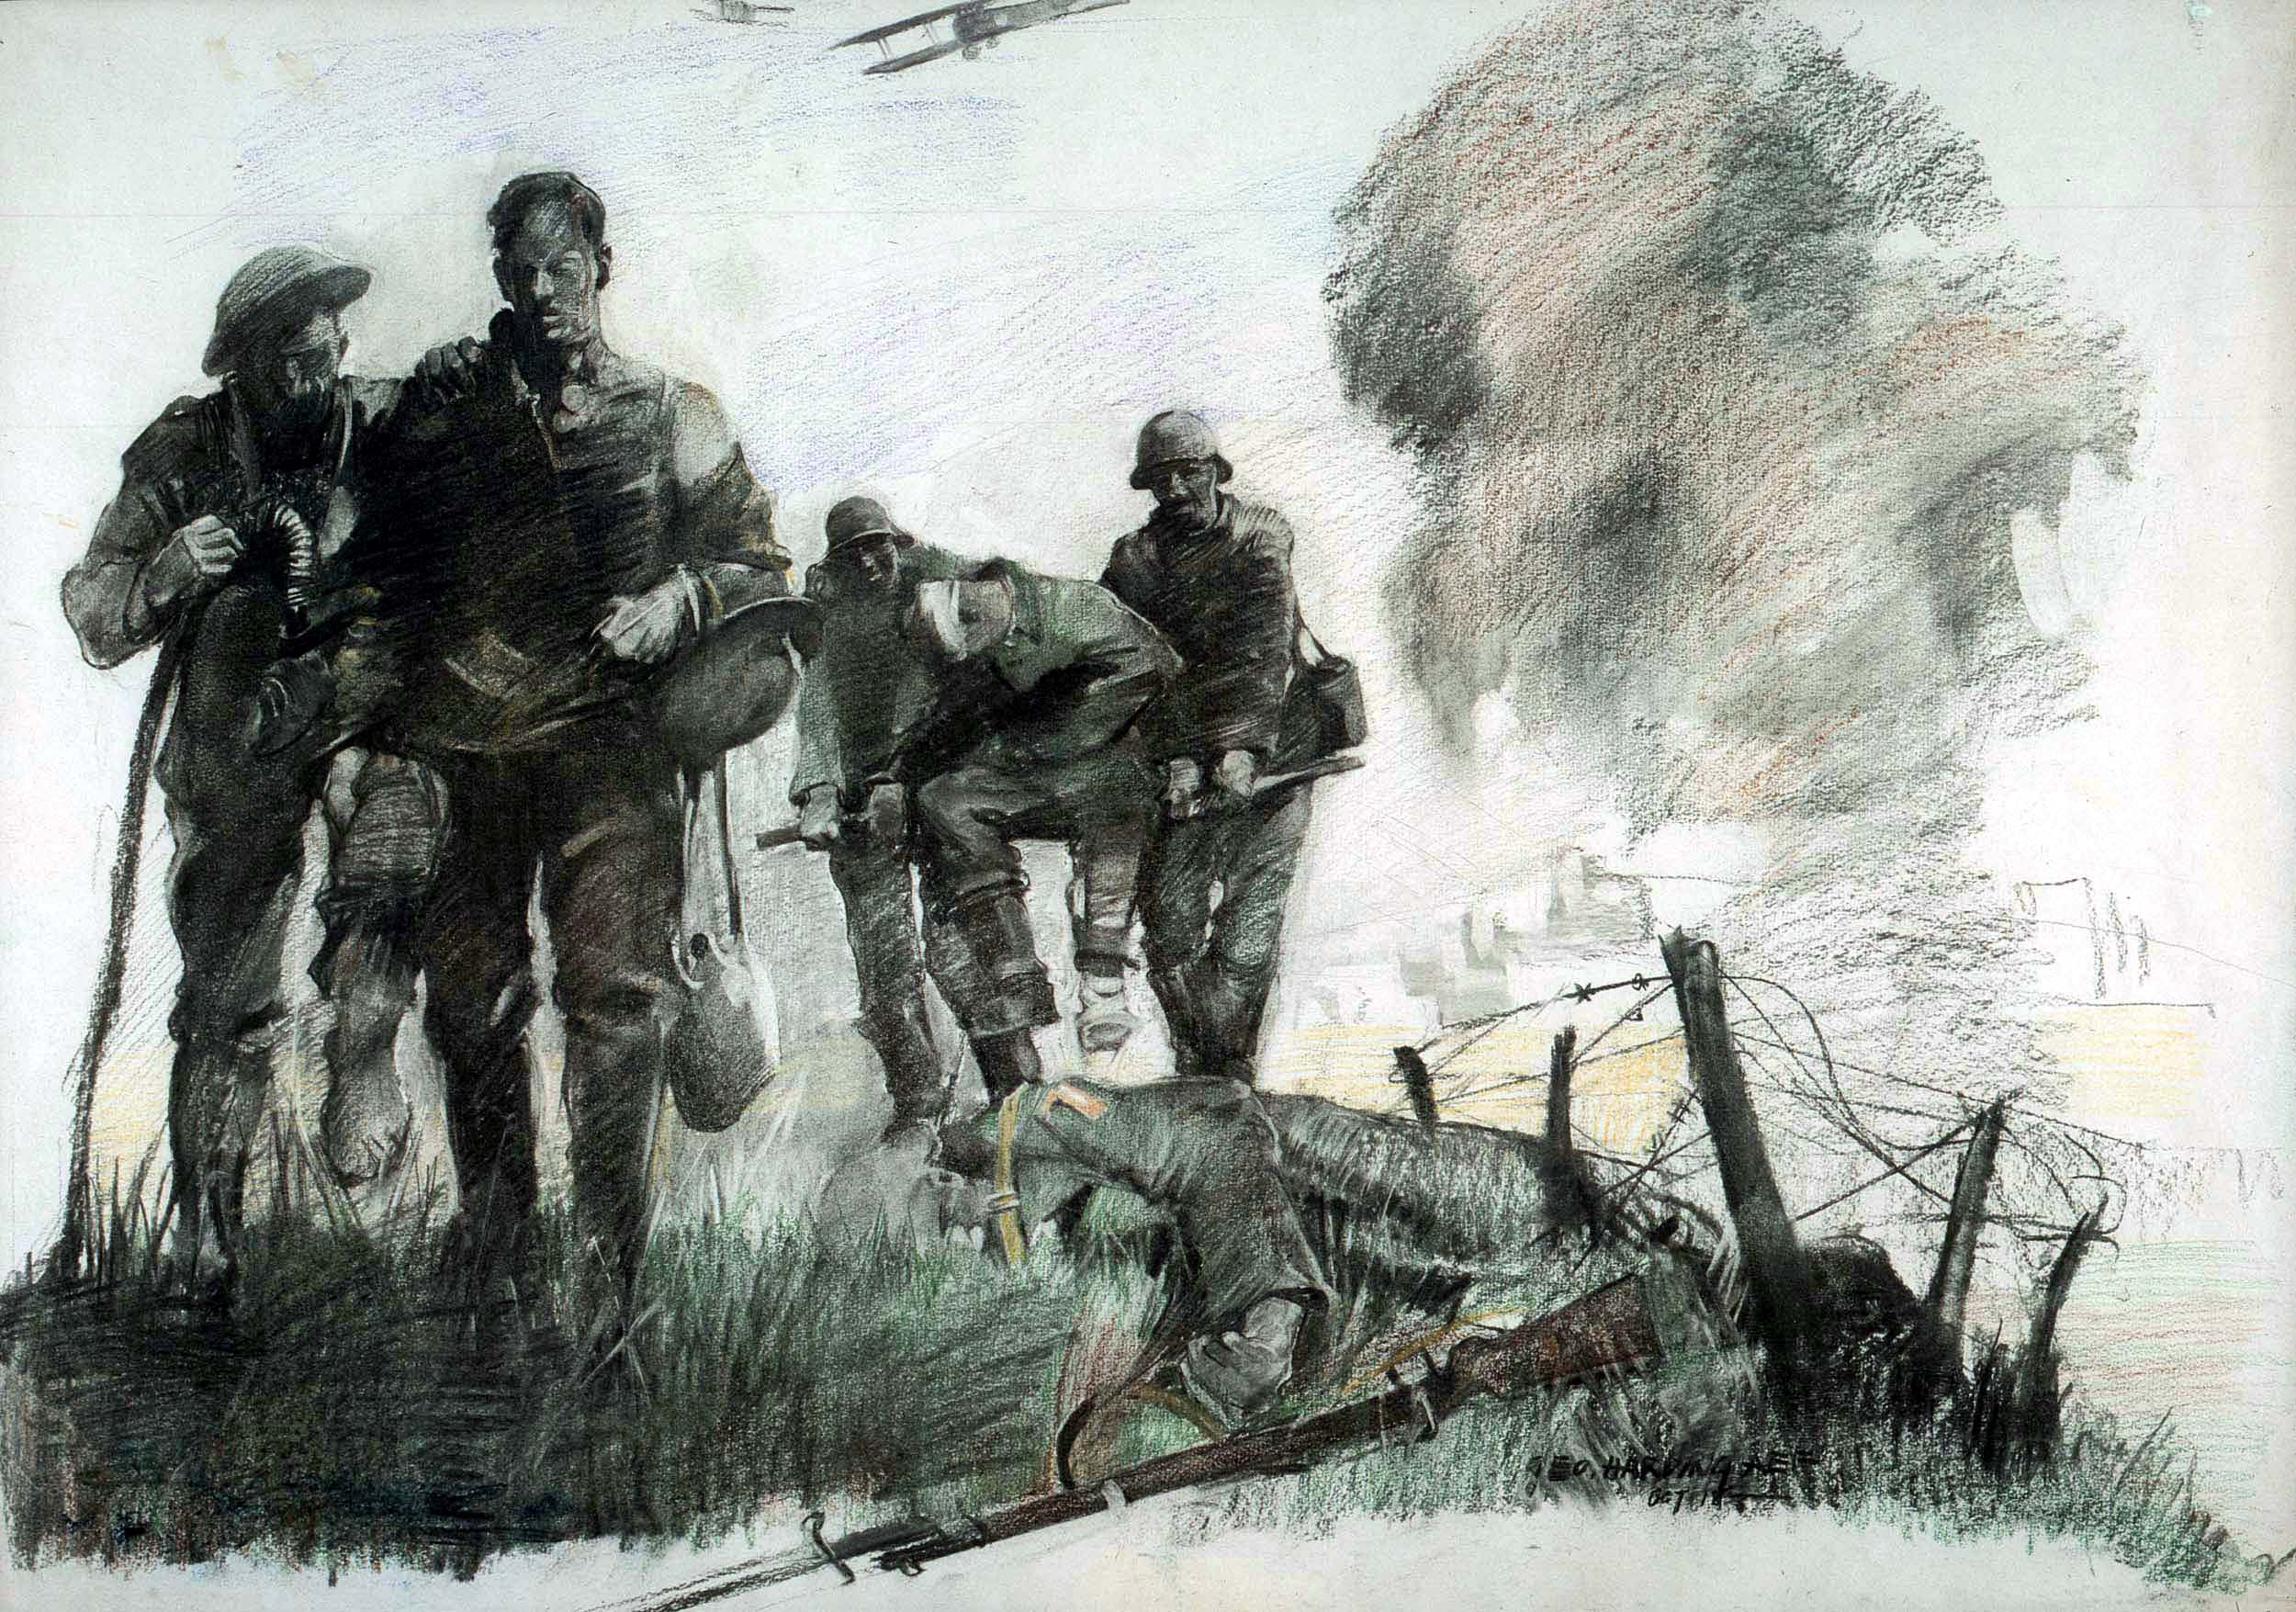 u s army center of military history prints posters army art